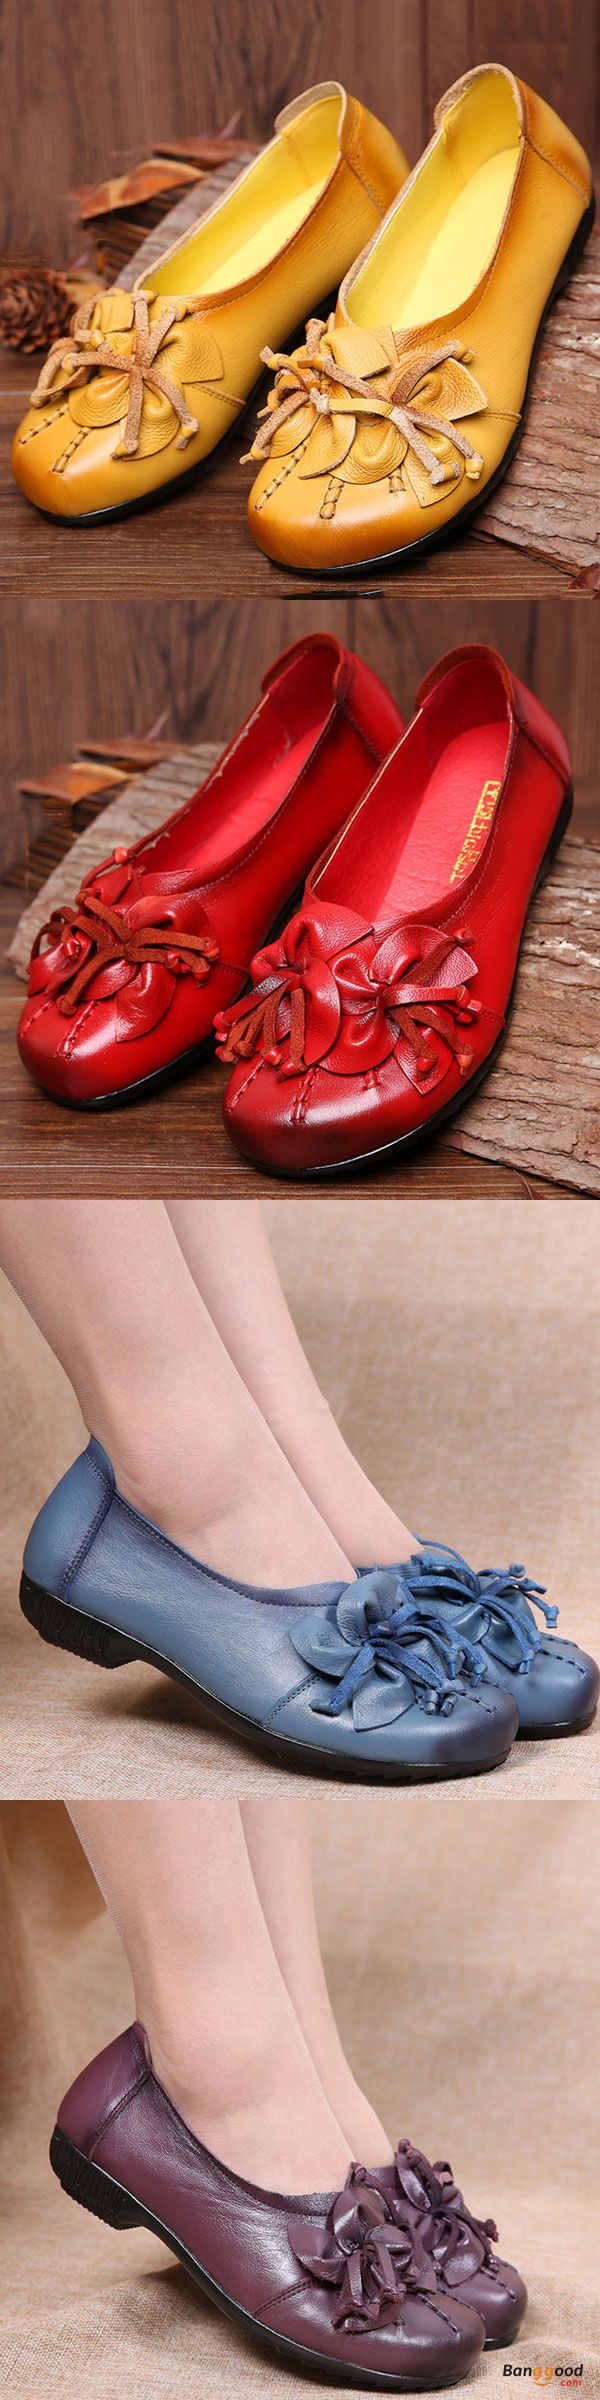 US$35.99+Free shipping. Size(US): 5~10. Upper Material: Leather. Love casual style! Summer Sandals, Women Flat Sandals, shoes flats, shoes sandals, Casual, Outdoor, Comfortable.